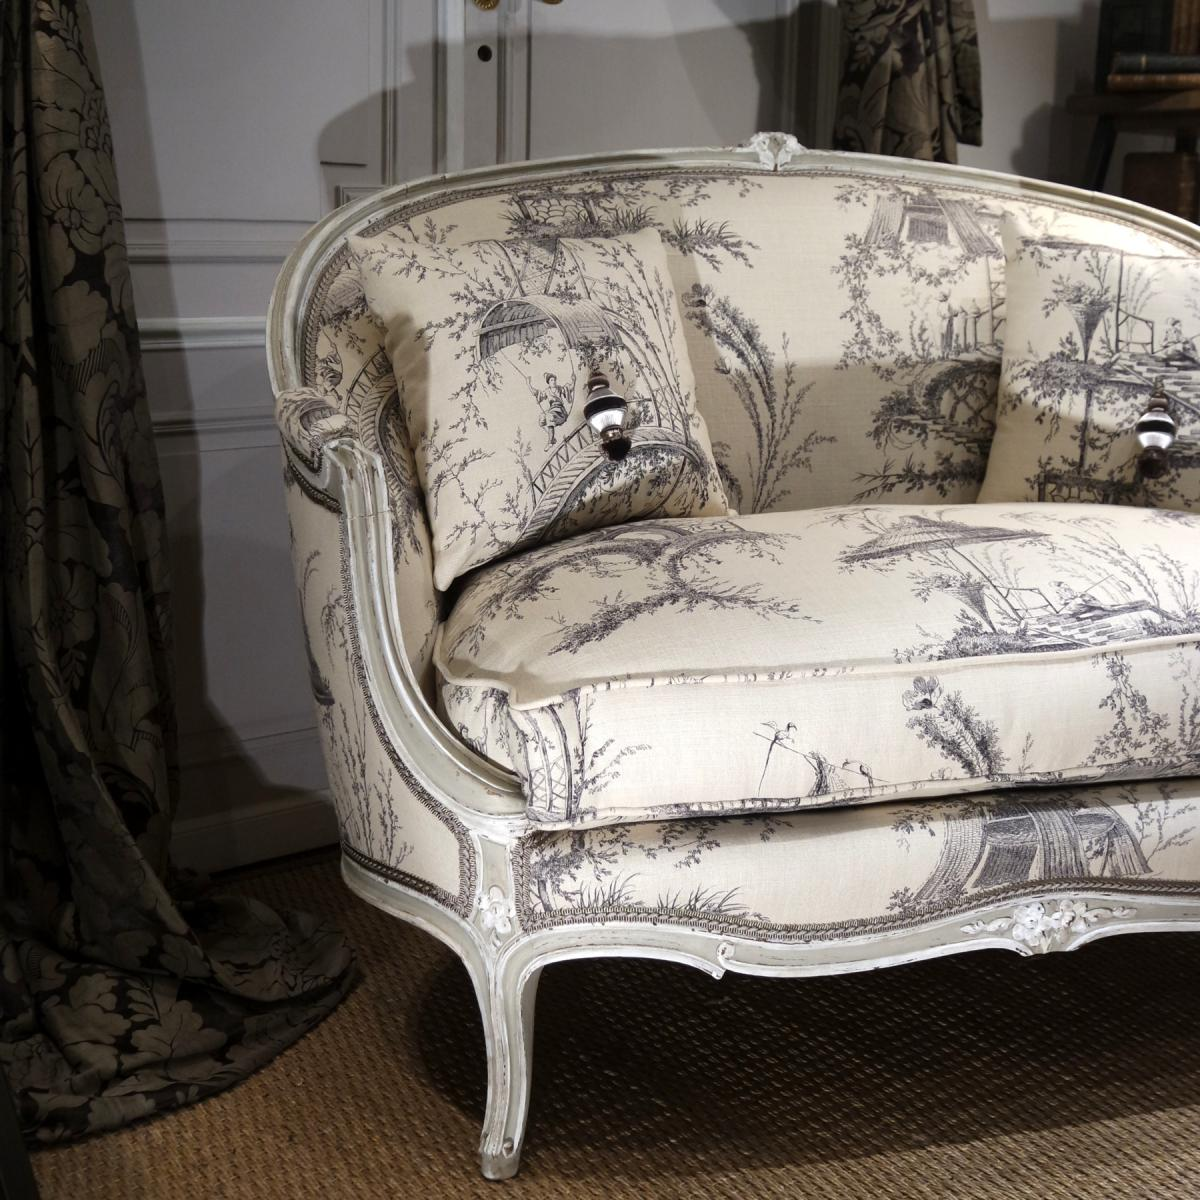 banquette corbeille style louis xv banquettes canap s. Black Bedroom Furniture Sets. Home Design Ideas